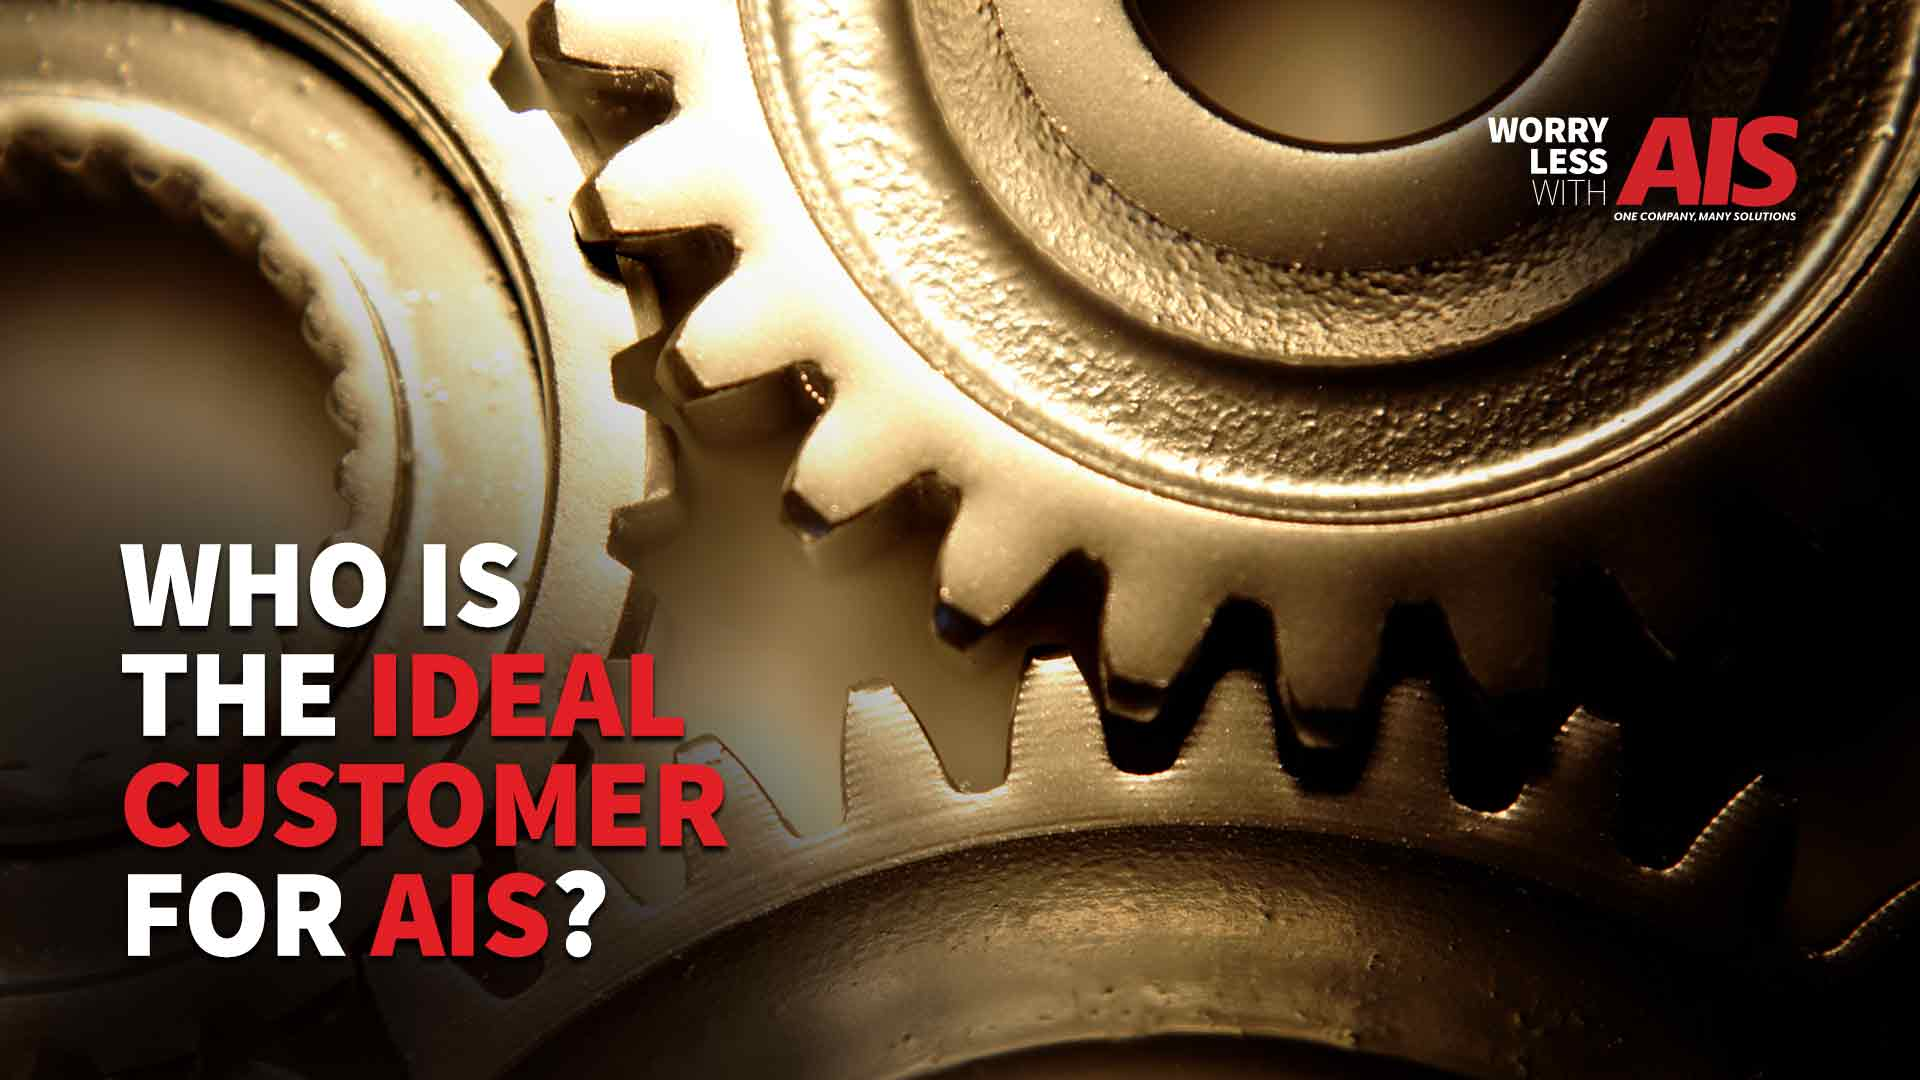 Who Is The Ideal Customer For AIS?